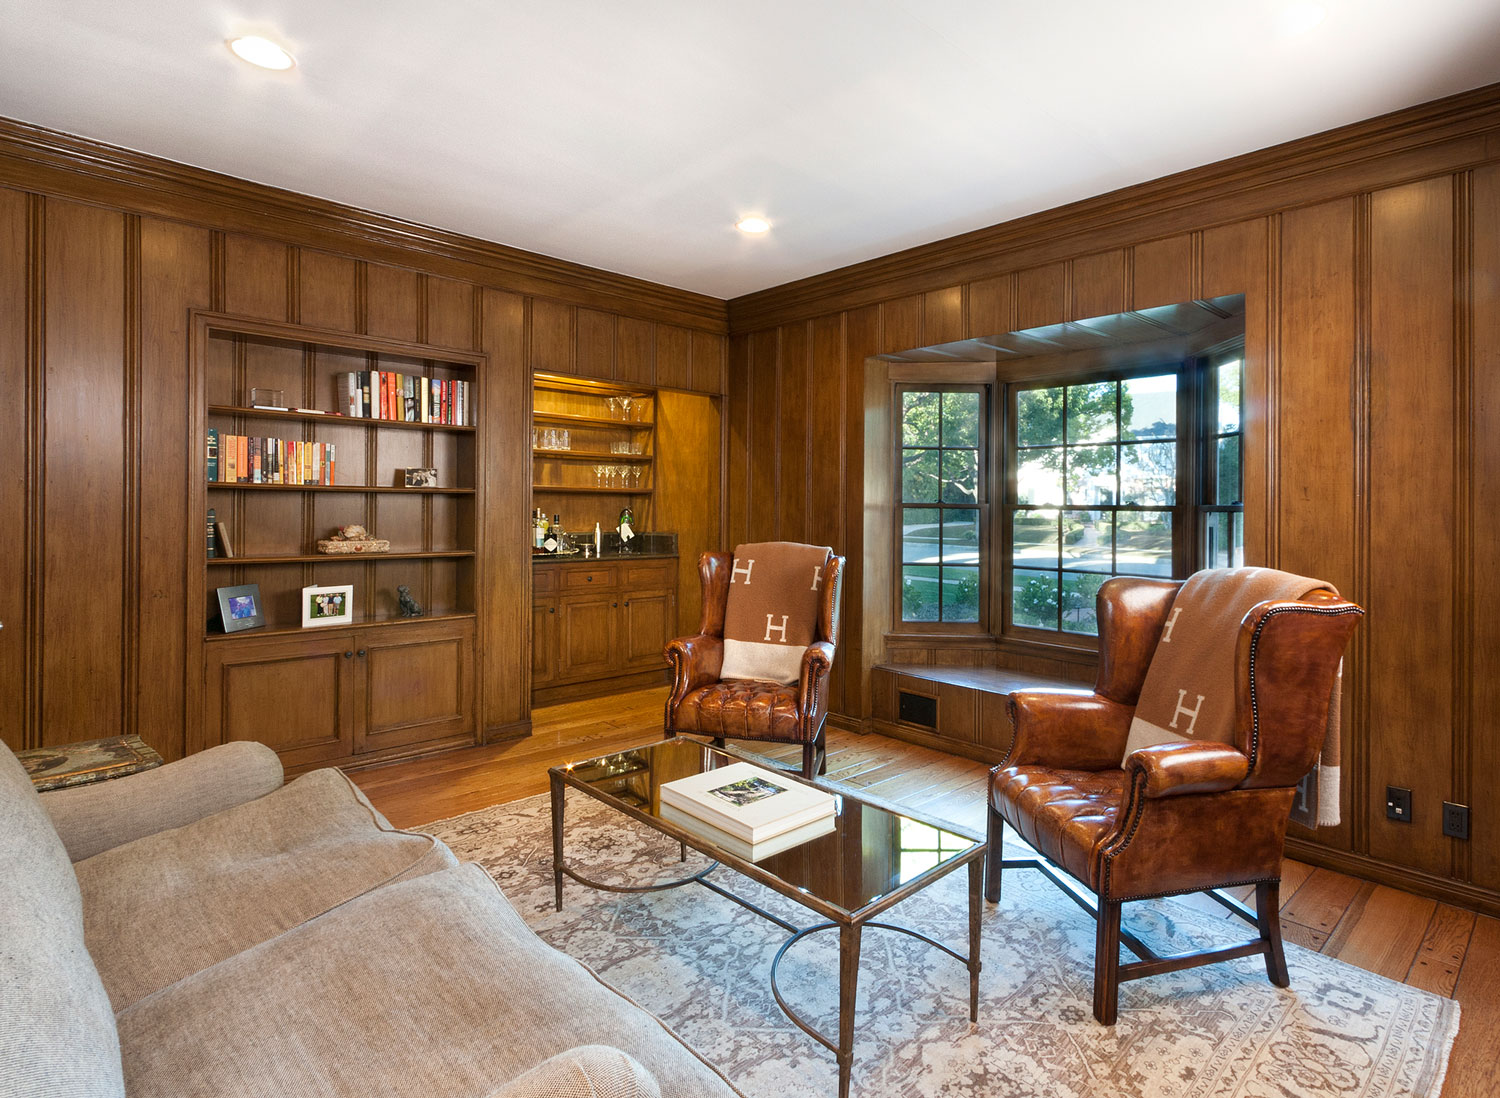 07-wood-paneled-home-office-built-in-shelves-window-seat-gary-drake-general-contractor.jpg